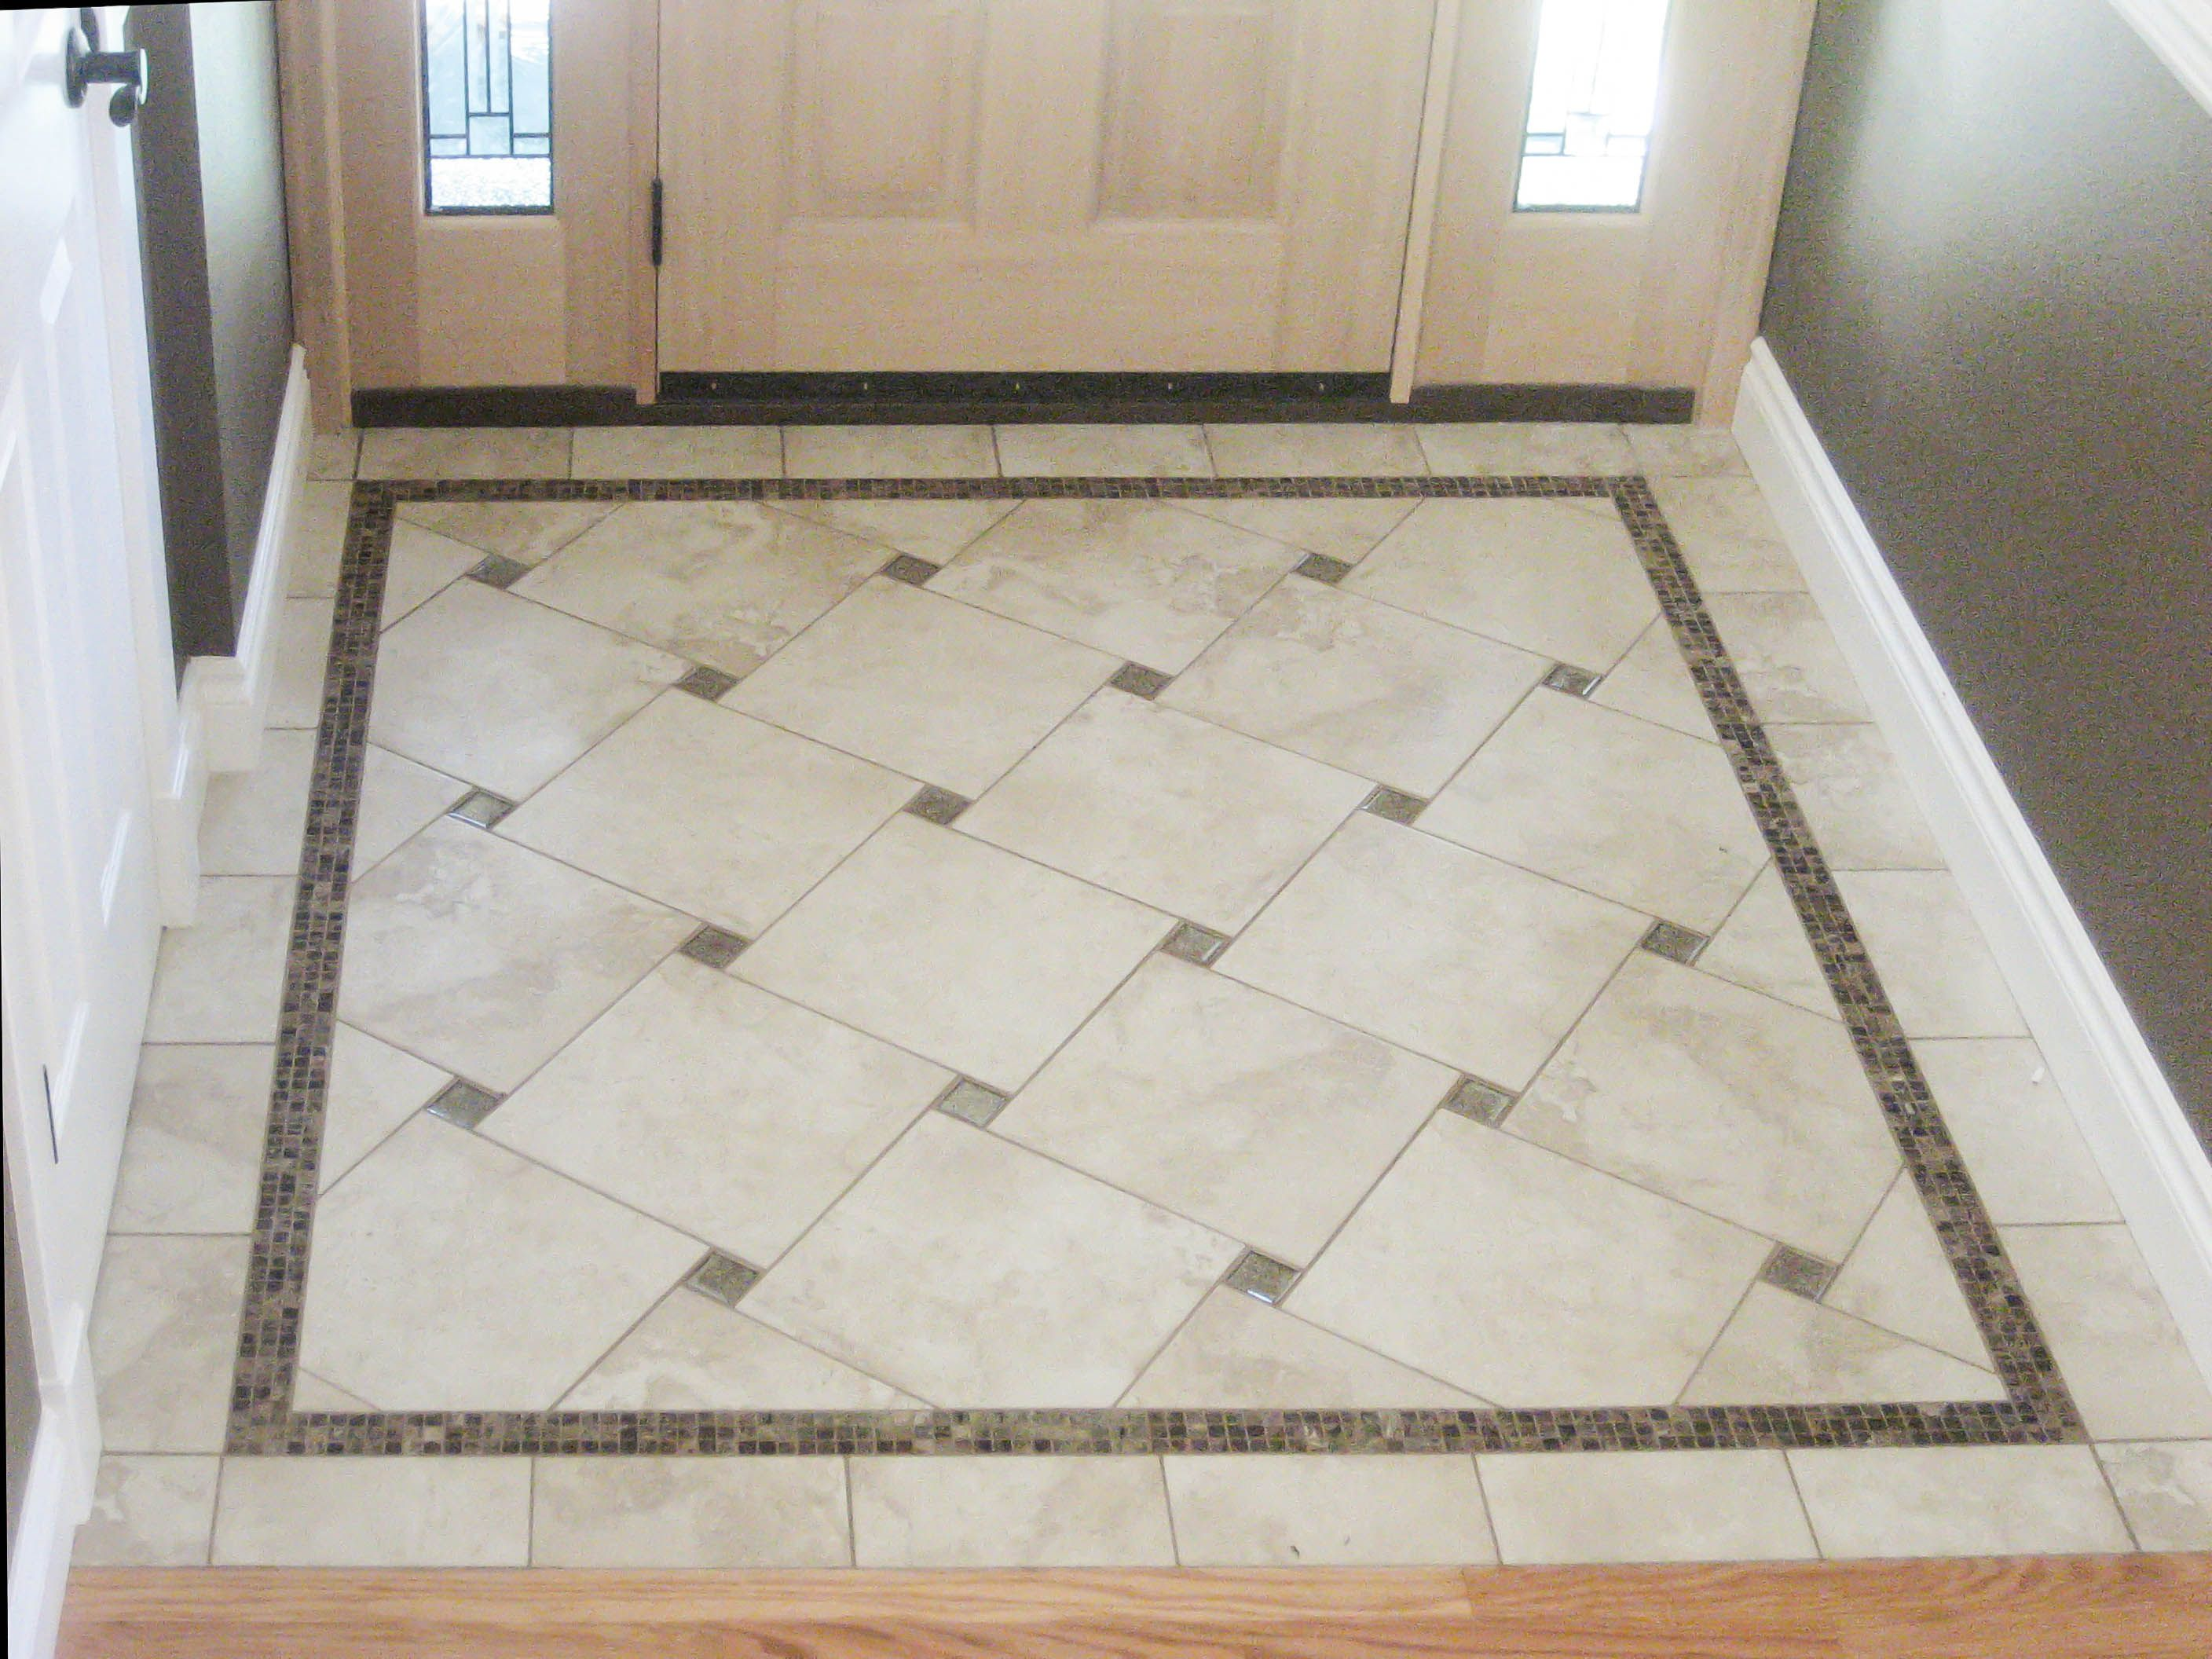 Floor Tile Ideas entry floor tile ideas | entry floor photos gallery - seattle tile YNFCKWR